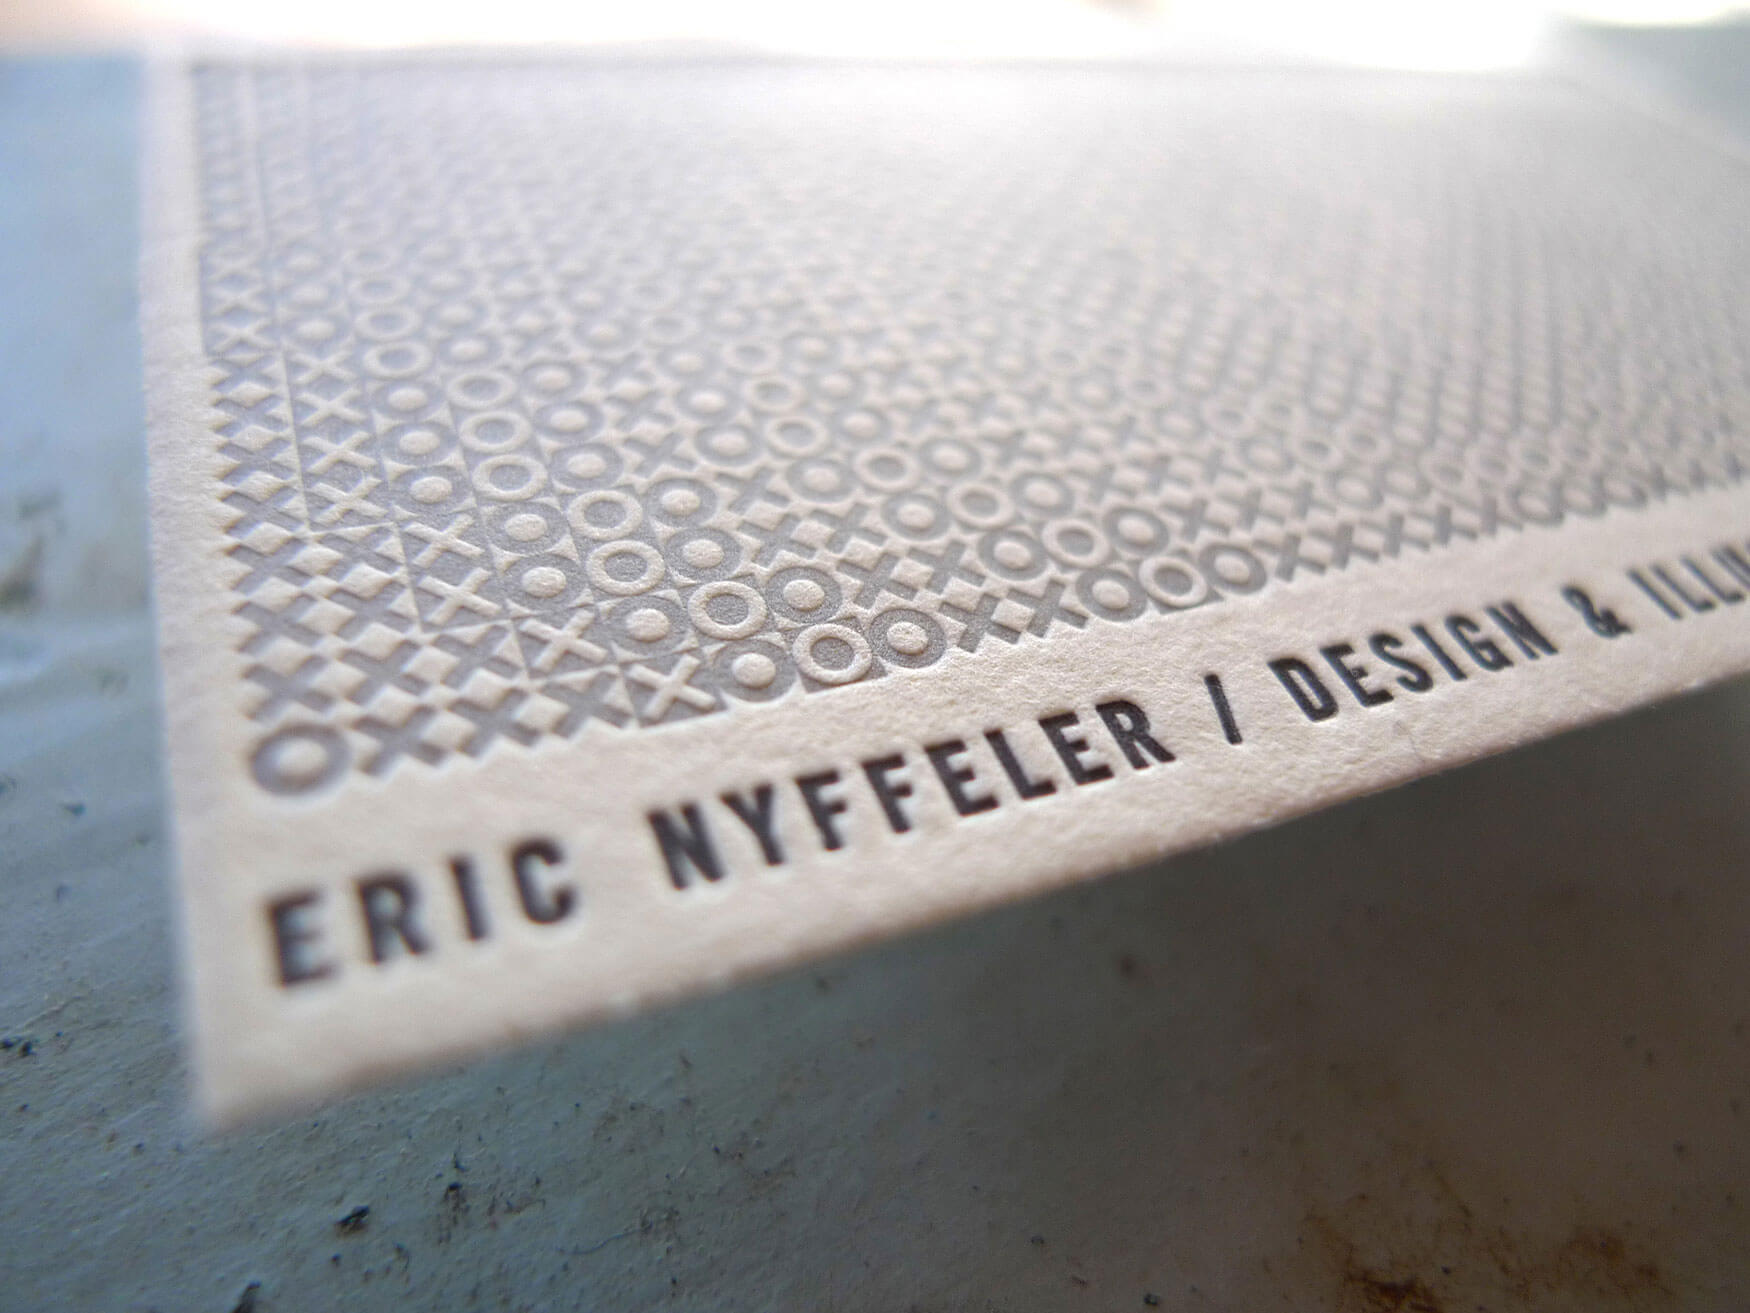 Eric nyffeler eric nyffeler business card my good friends at the half and half fired up their old vandercook and printed me up a bunch of letterpress goodness magicingreecefo Choice Image